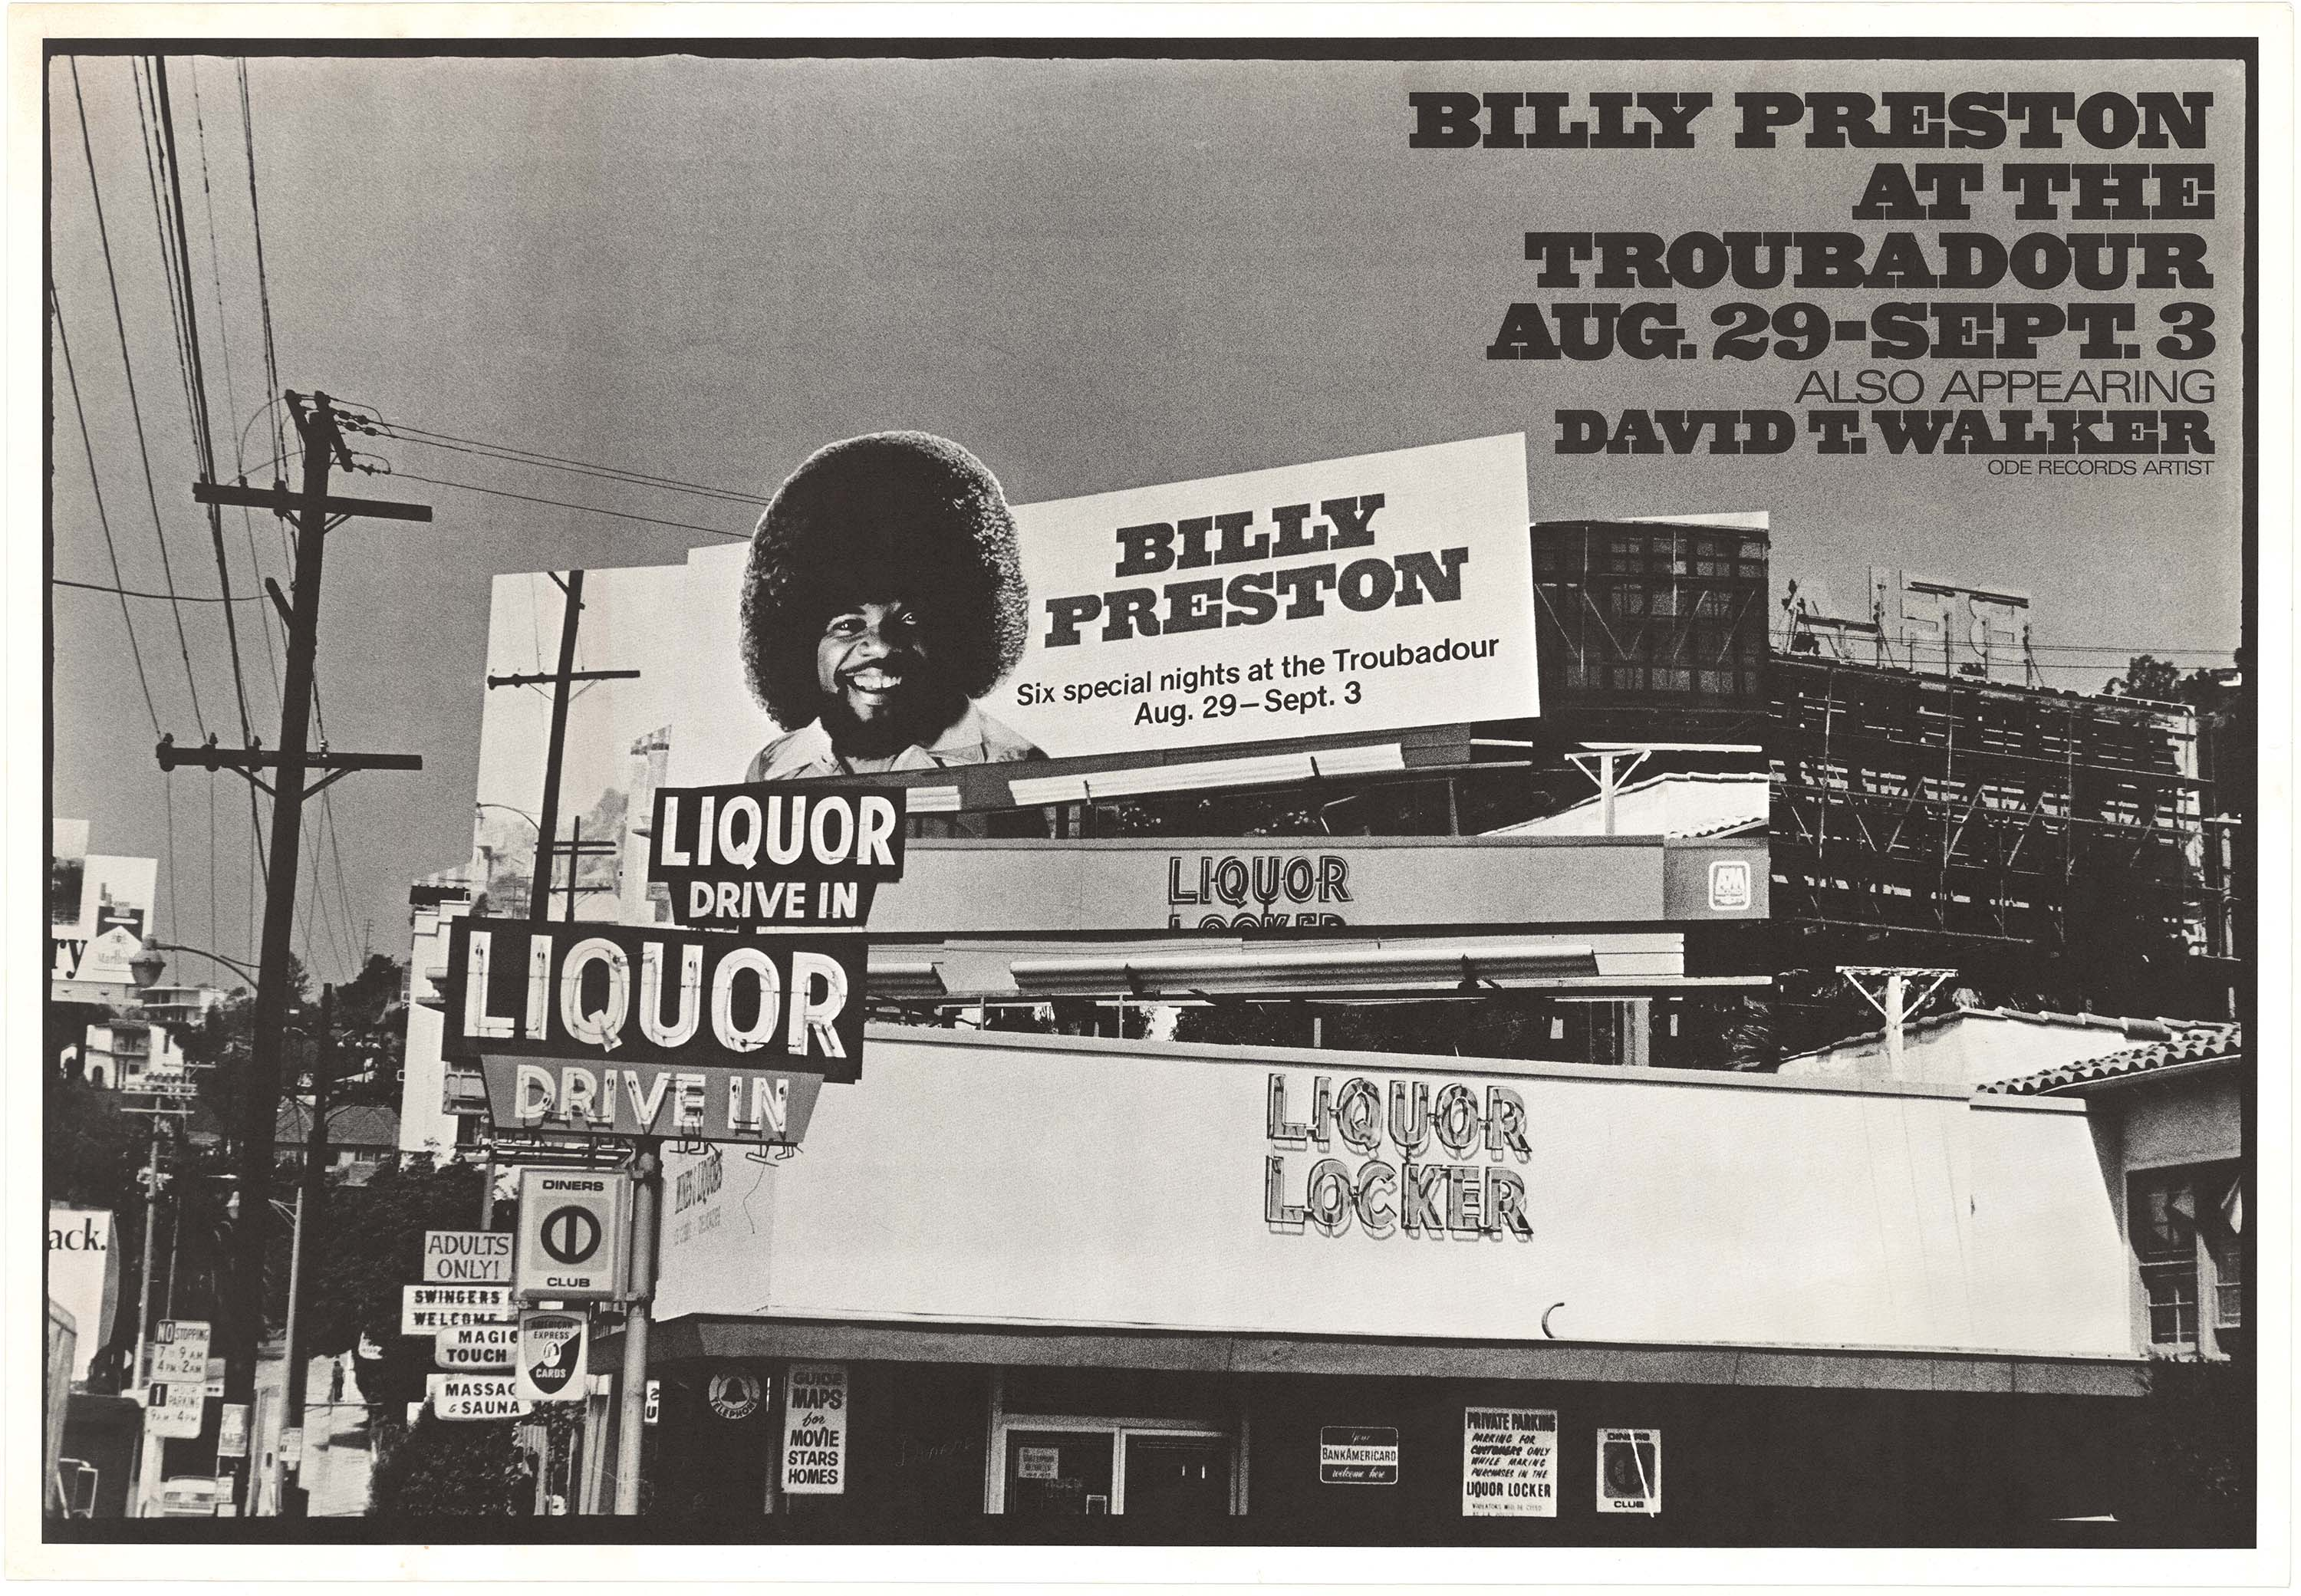 Billy Preston at the Troubadour poster